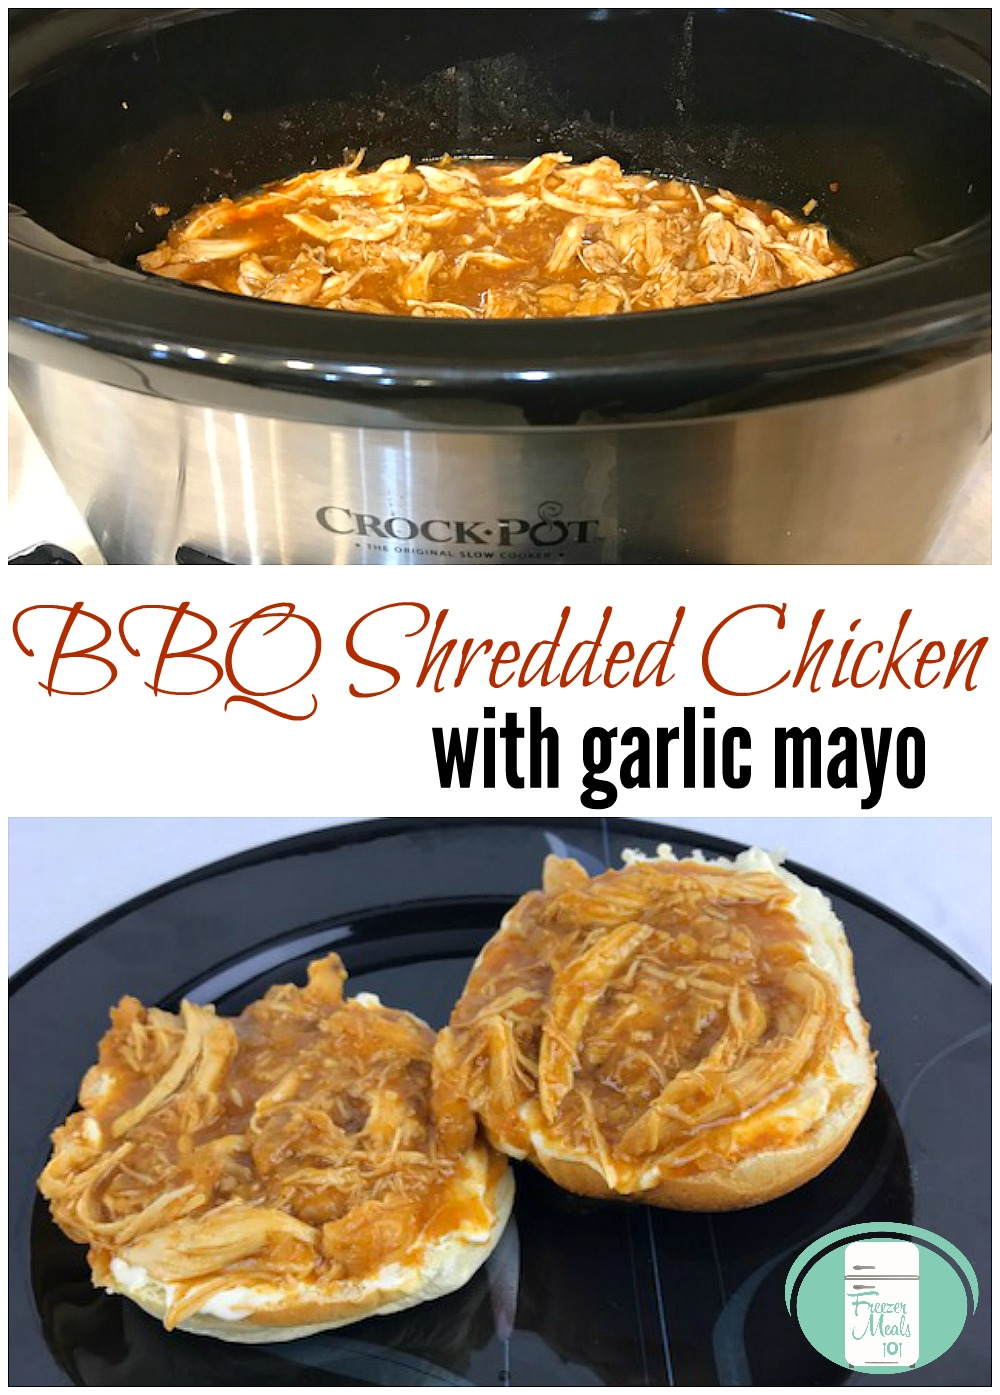 Droolworthy BBQ Shredded Chicken with garlic mayo freezer meal